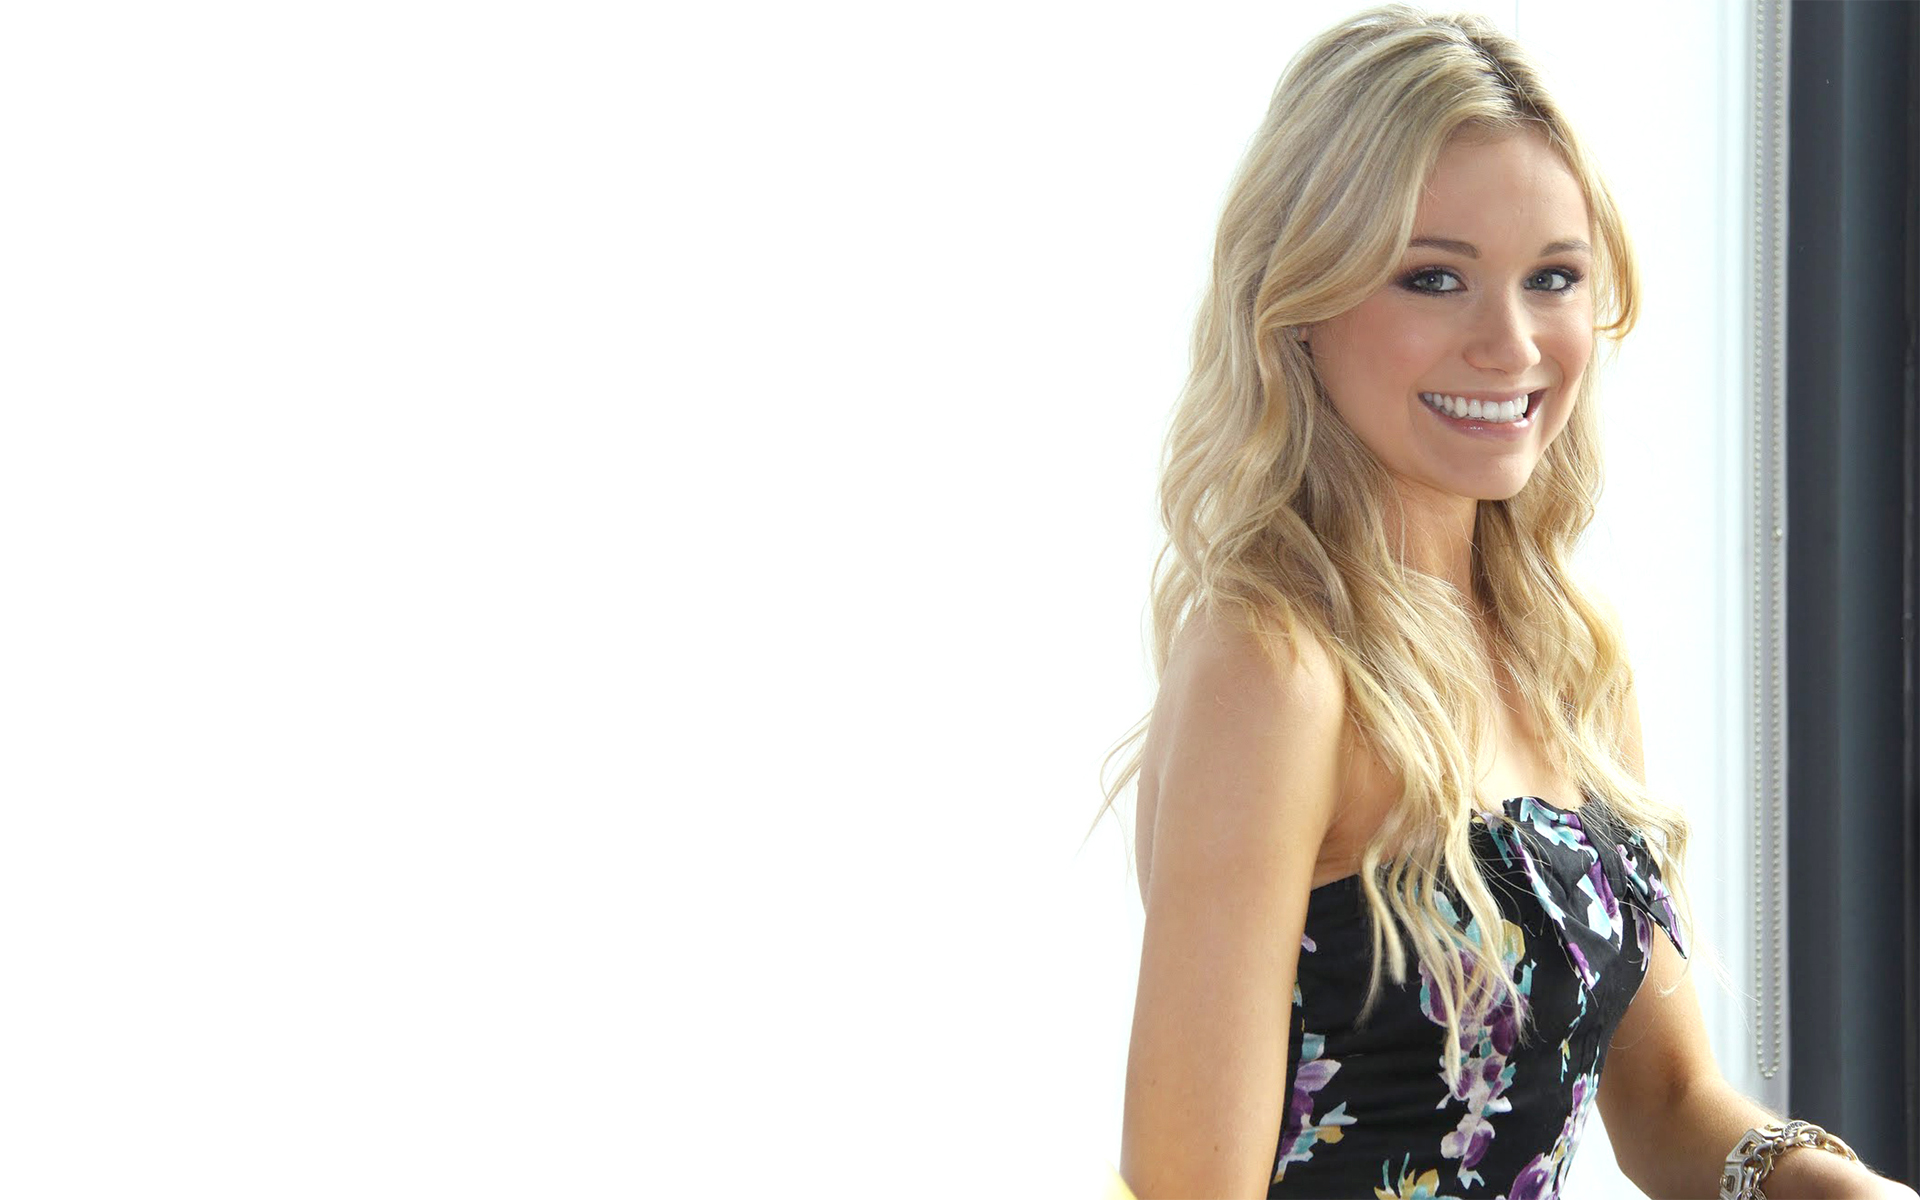 Fall Out Boy Wallpaper 2013 Katrina Bowden Wallpapers High Quality Download Free